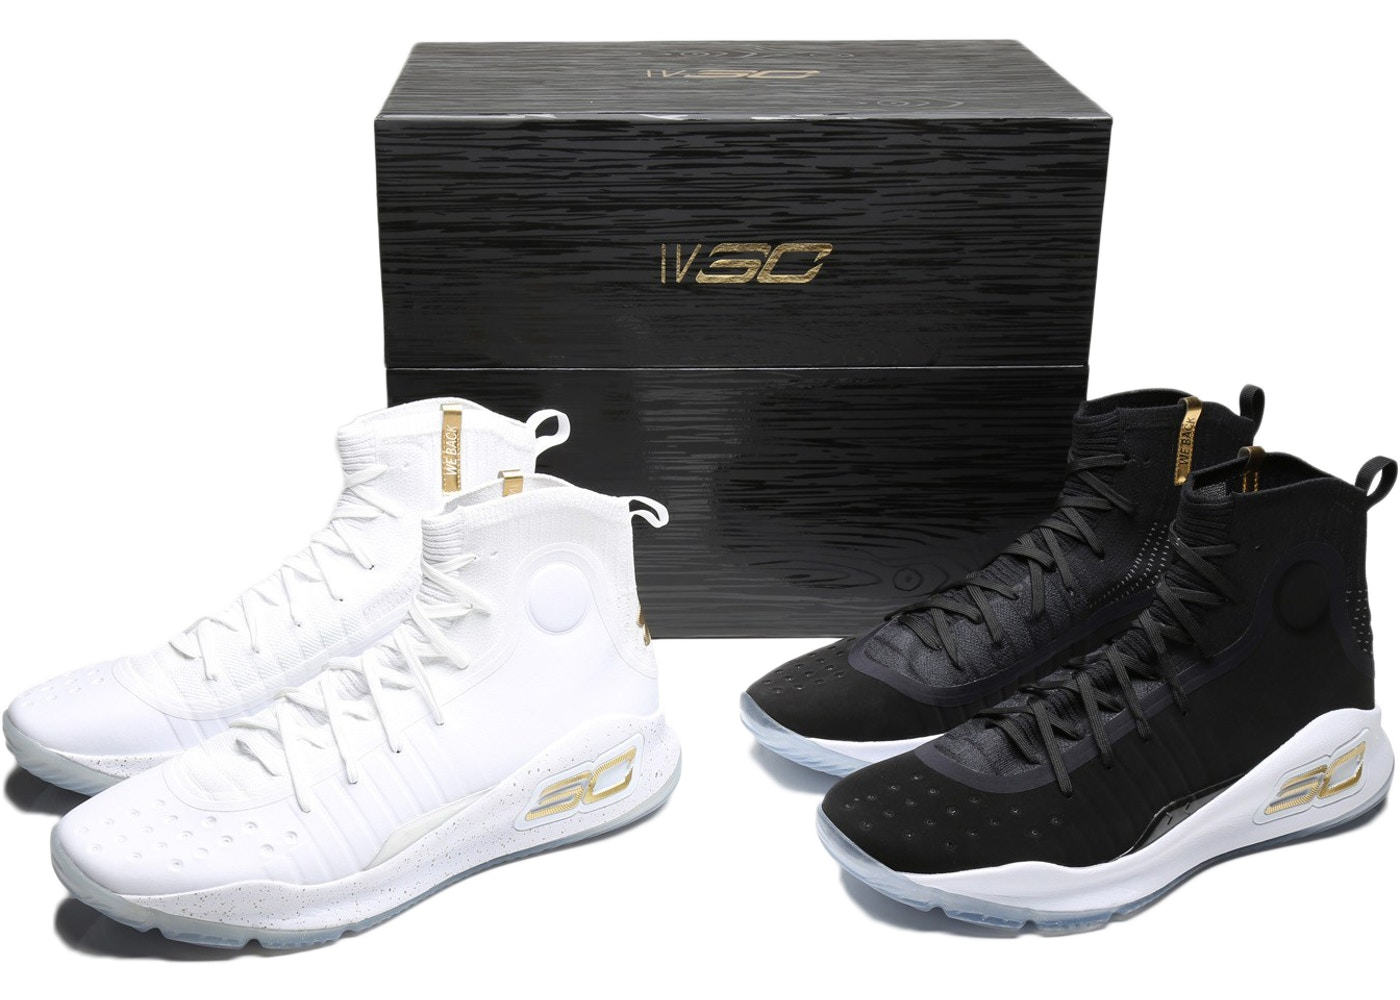 30c3404e2f2b Under Armour Curry 4 Champ Pack - 3021675 001